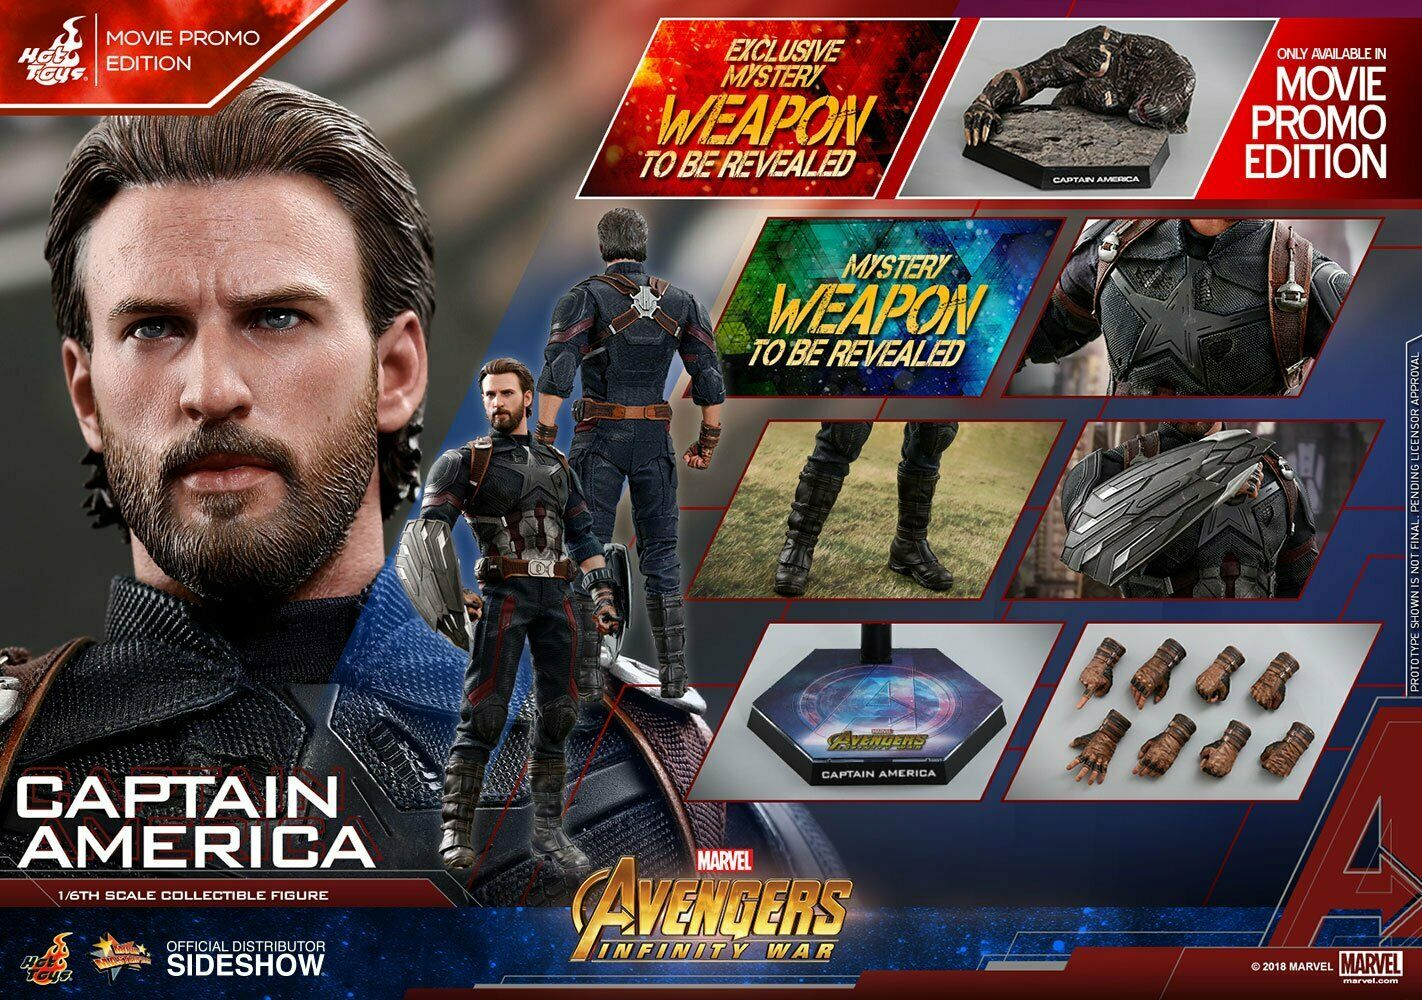 AVENGERS INFINITY WAR CAPTAIN AMERICA (MOVIE PROMO ED.)1 6 Action Fig. HOT TOYS